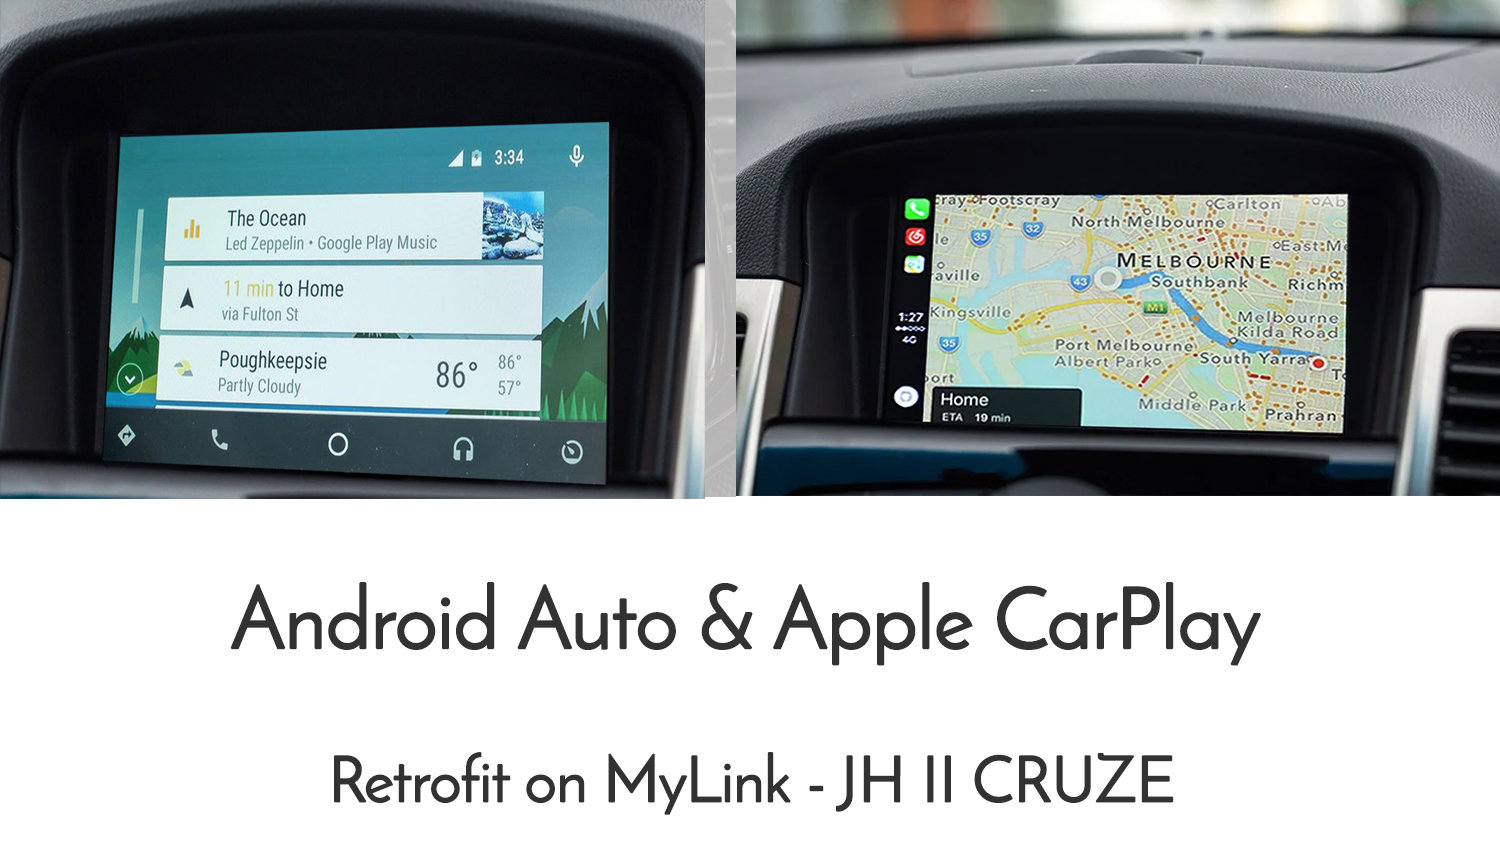 Details about Holden / Chevy Cruze JH-II MyLink Android Auto & Apple  CarPlay retrofit pack